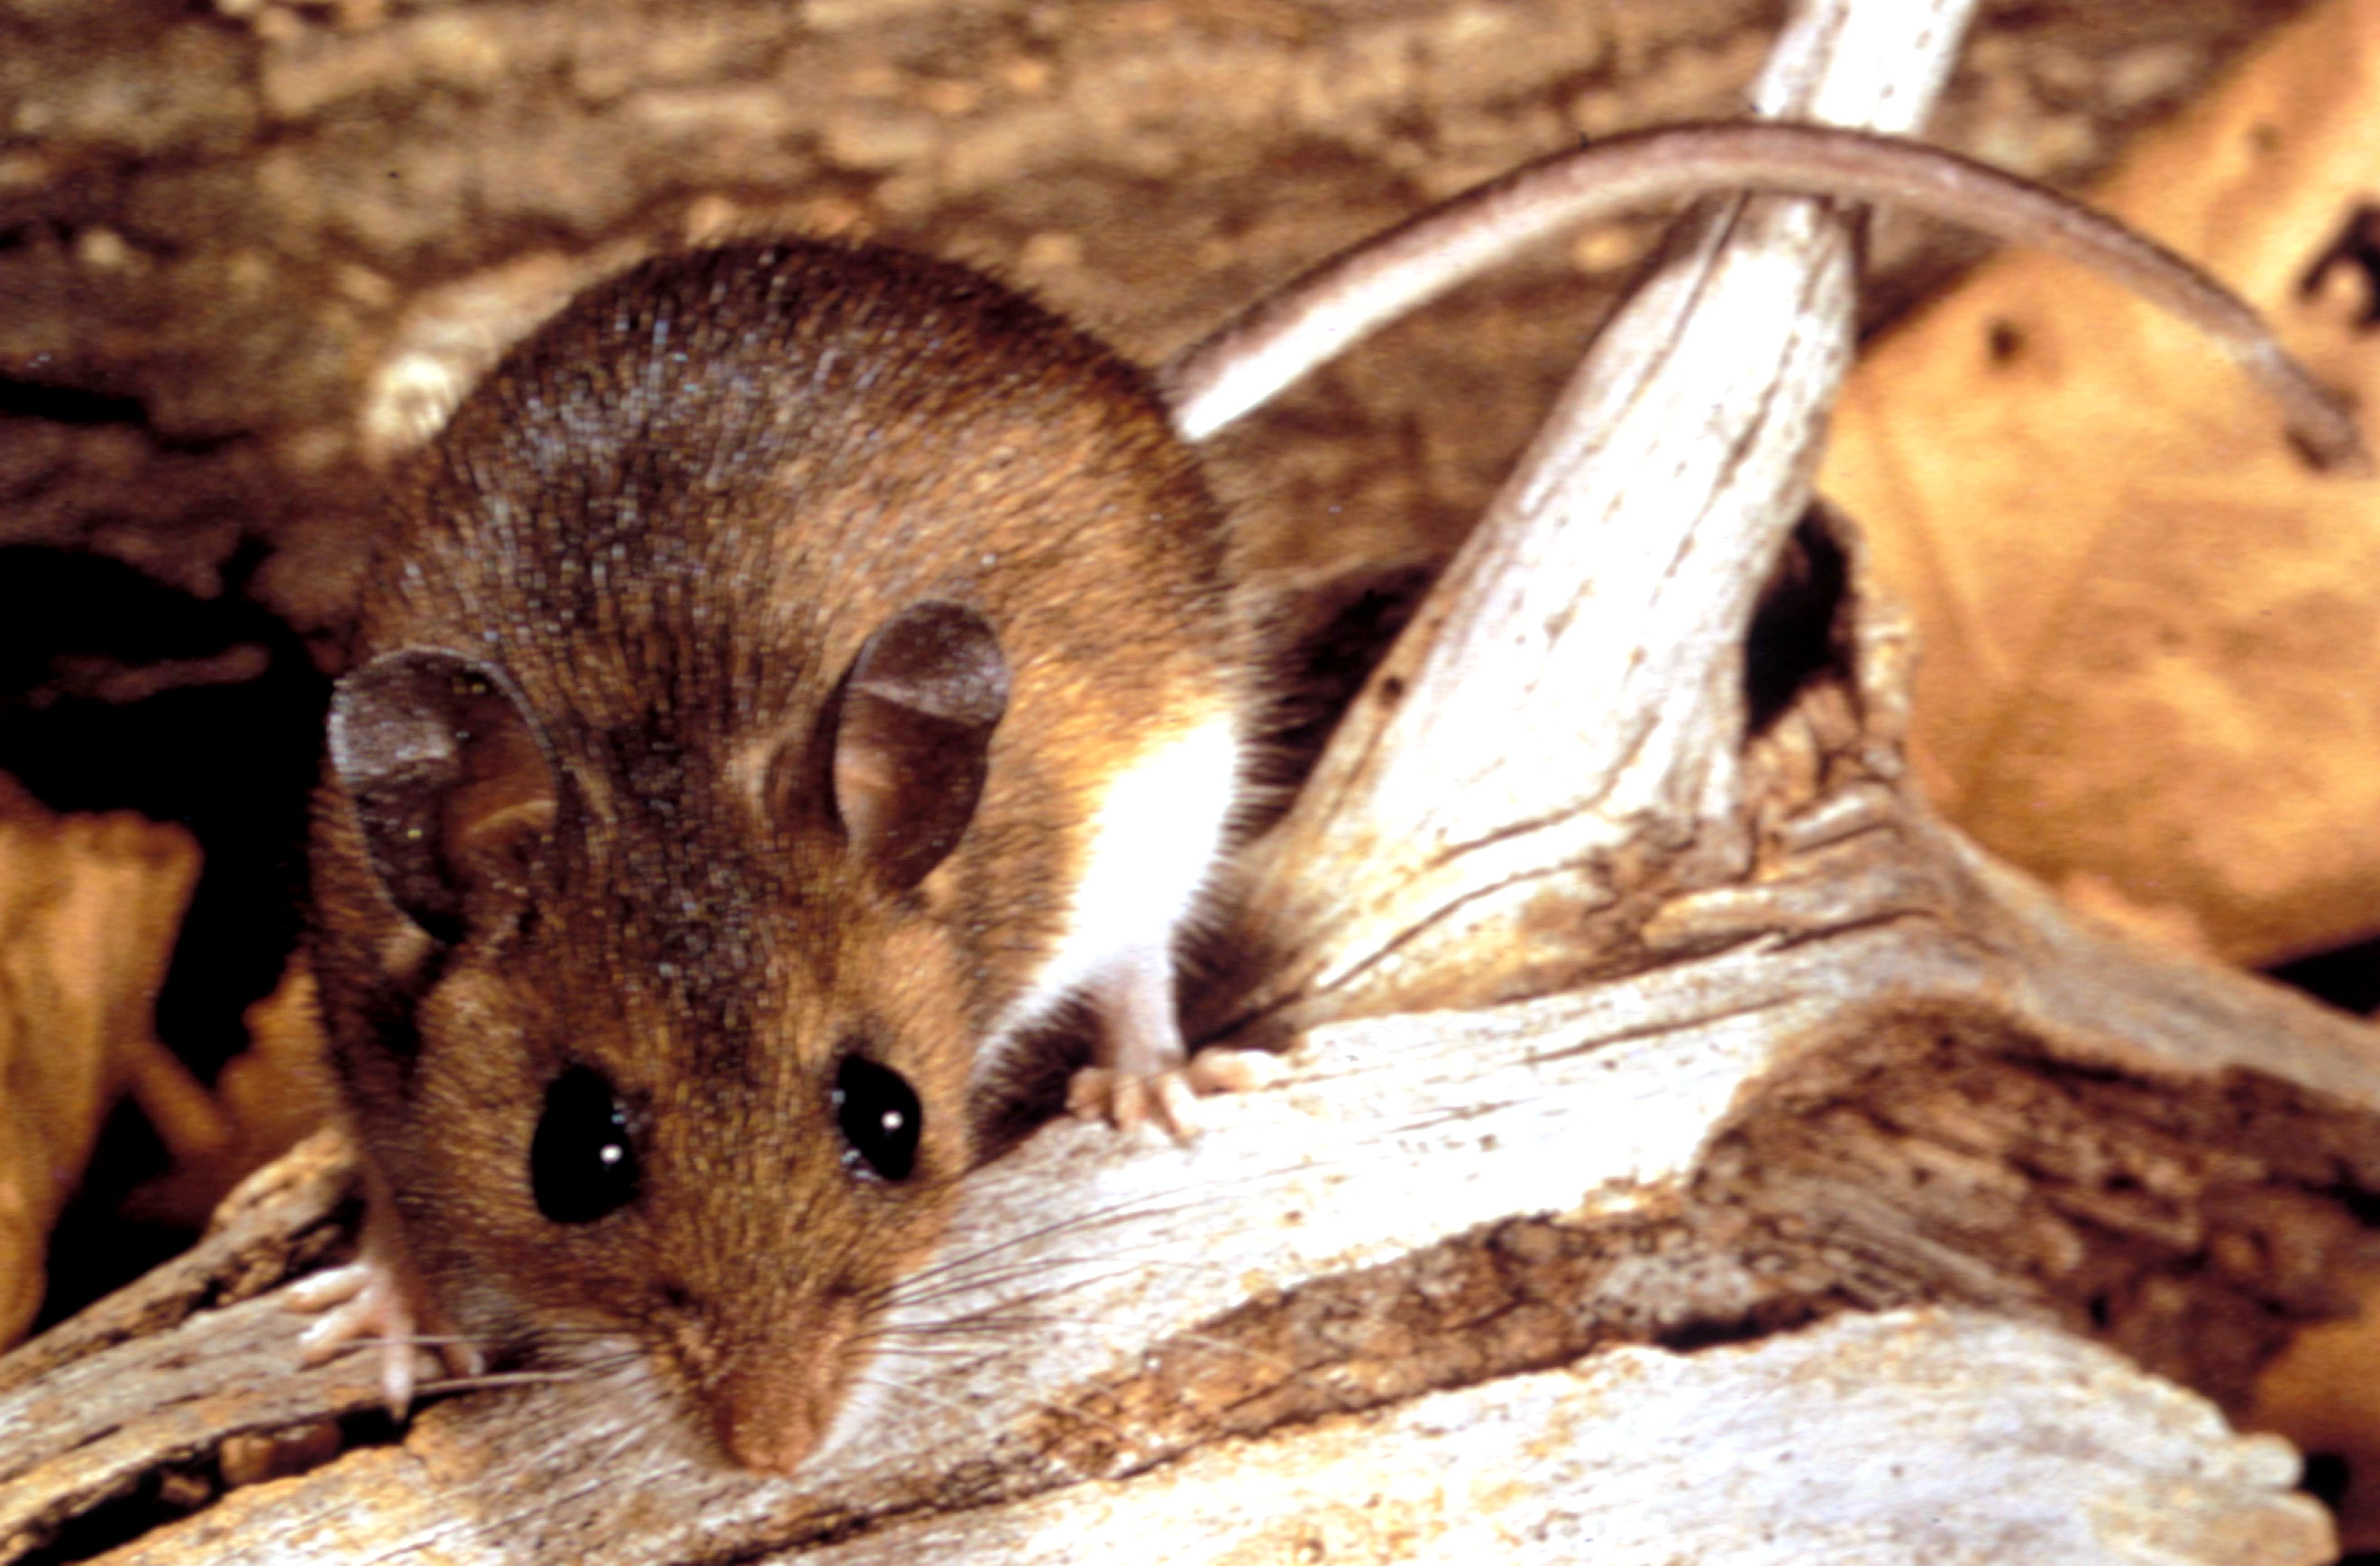 Free picture: deer, mouse, peromyscus maniculatus, reservoir ...